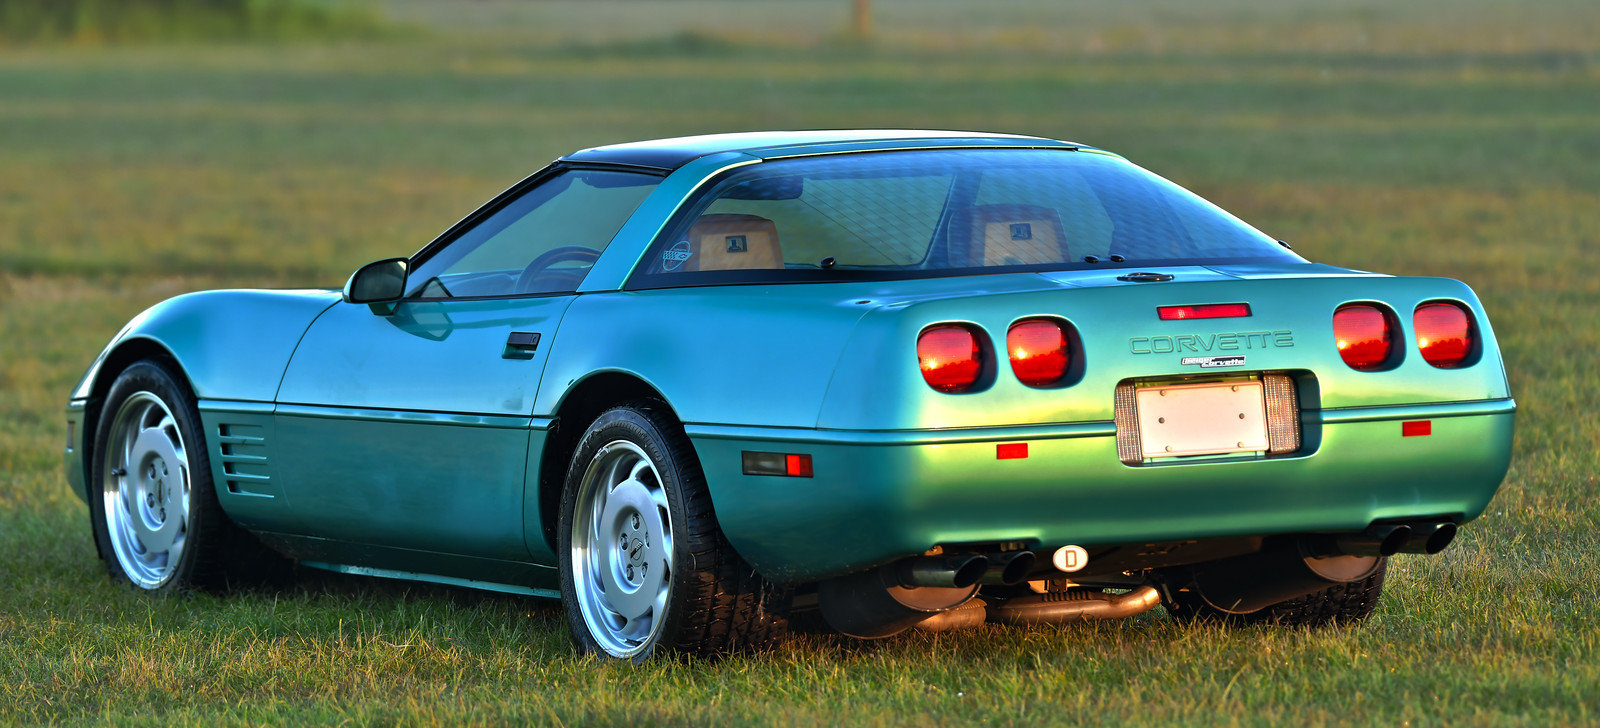 1991 Corvette C4 Targa 5.7 V8 Geiger For Sale (picture 3 of 6)